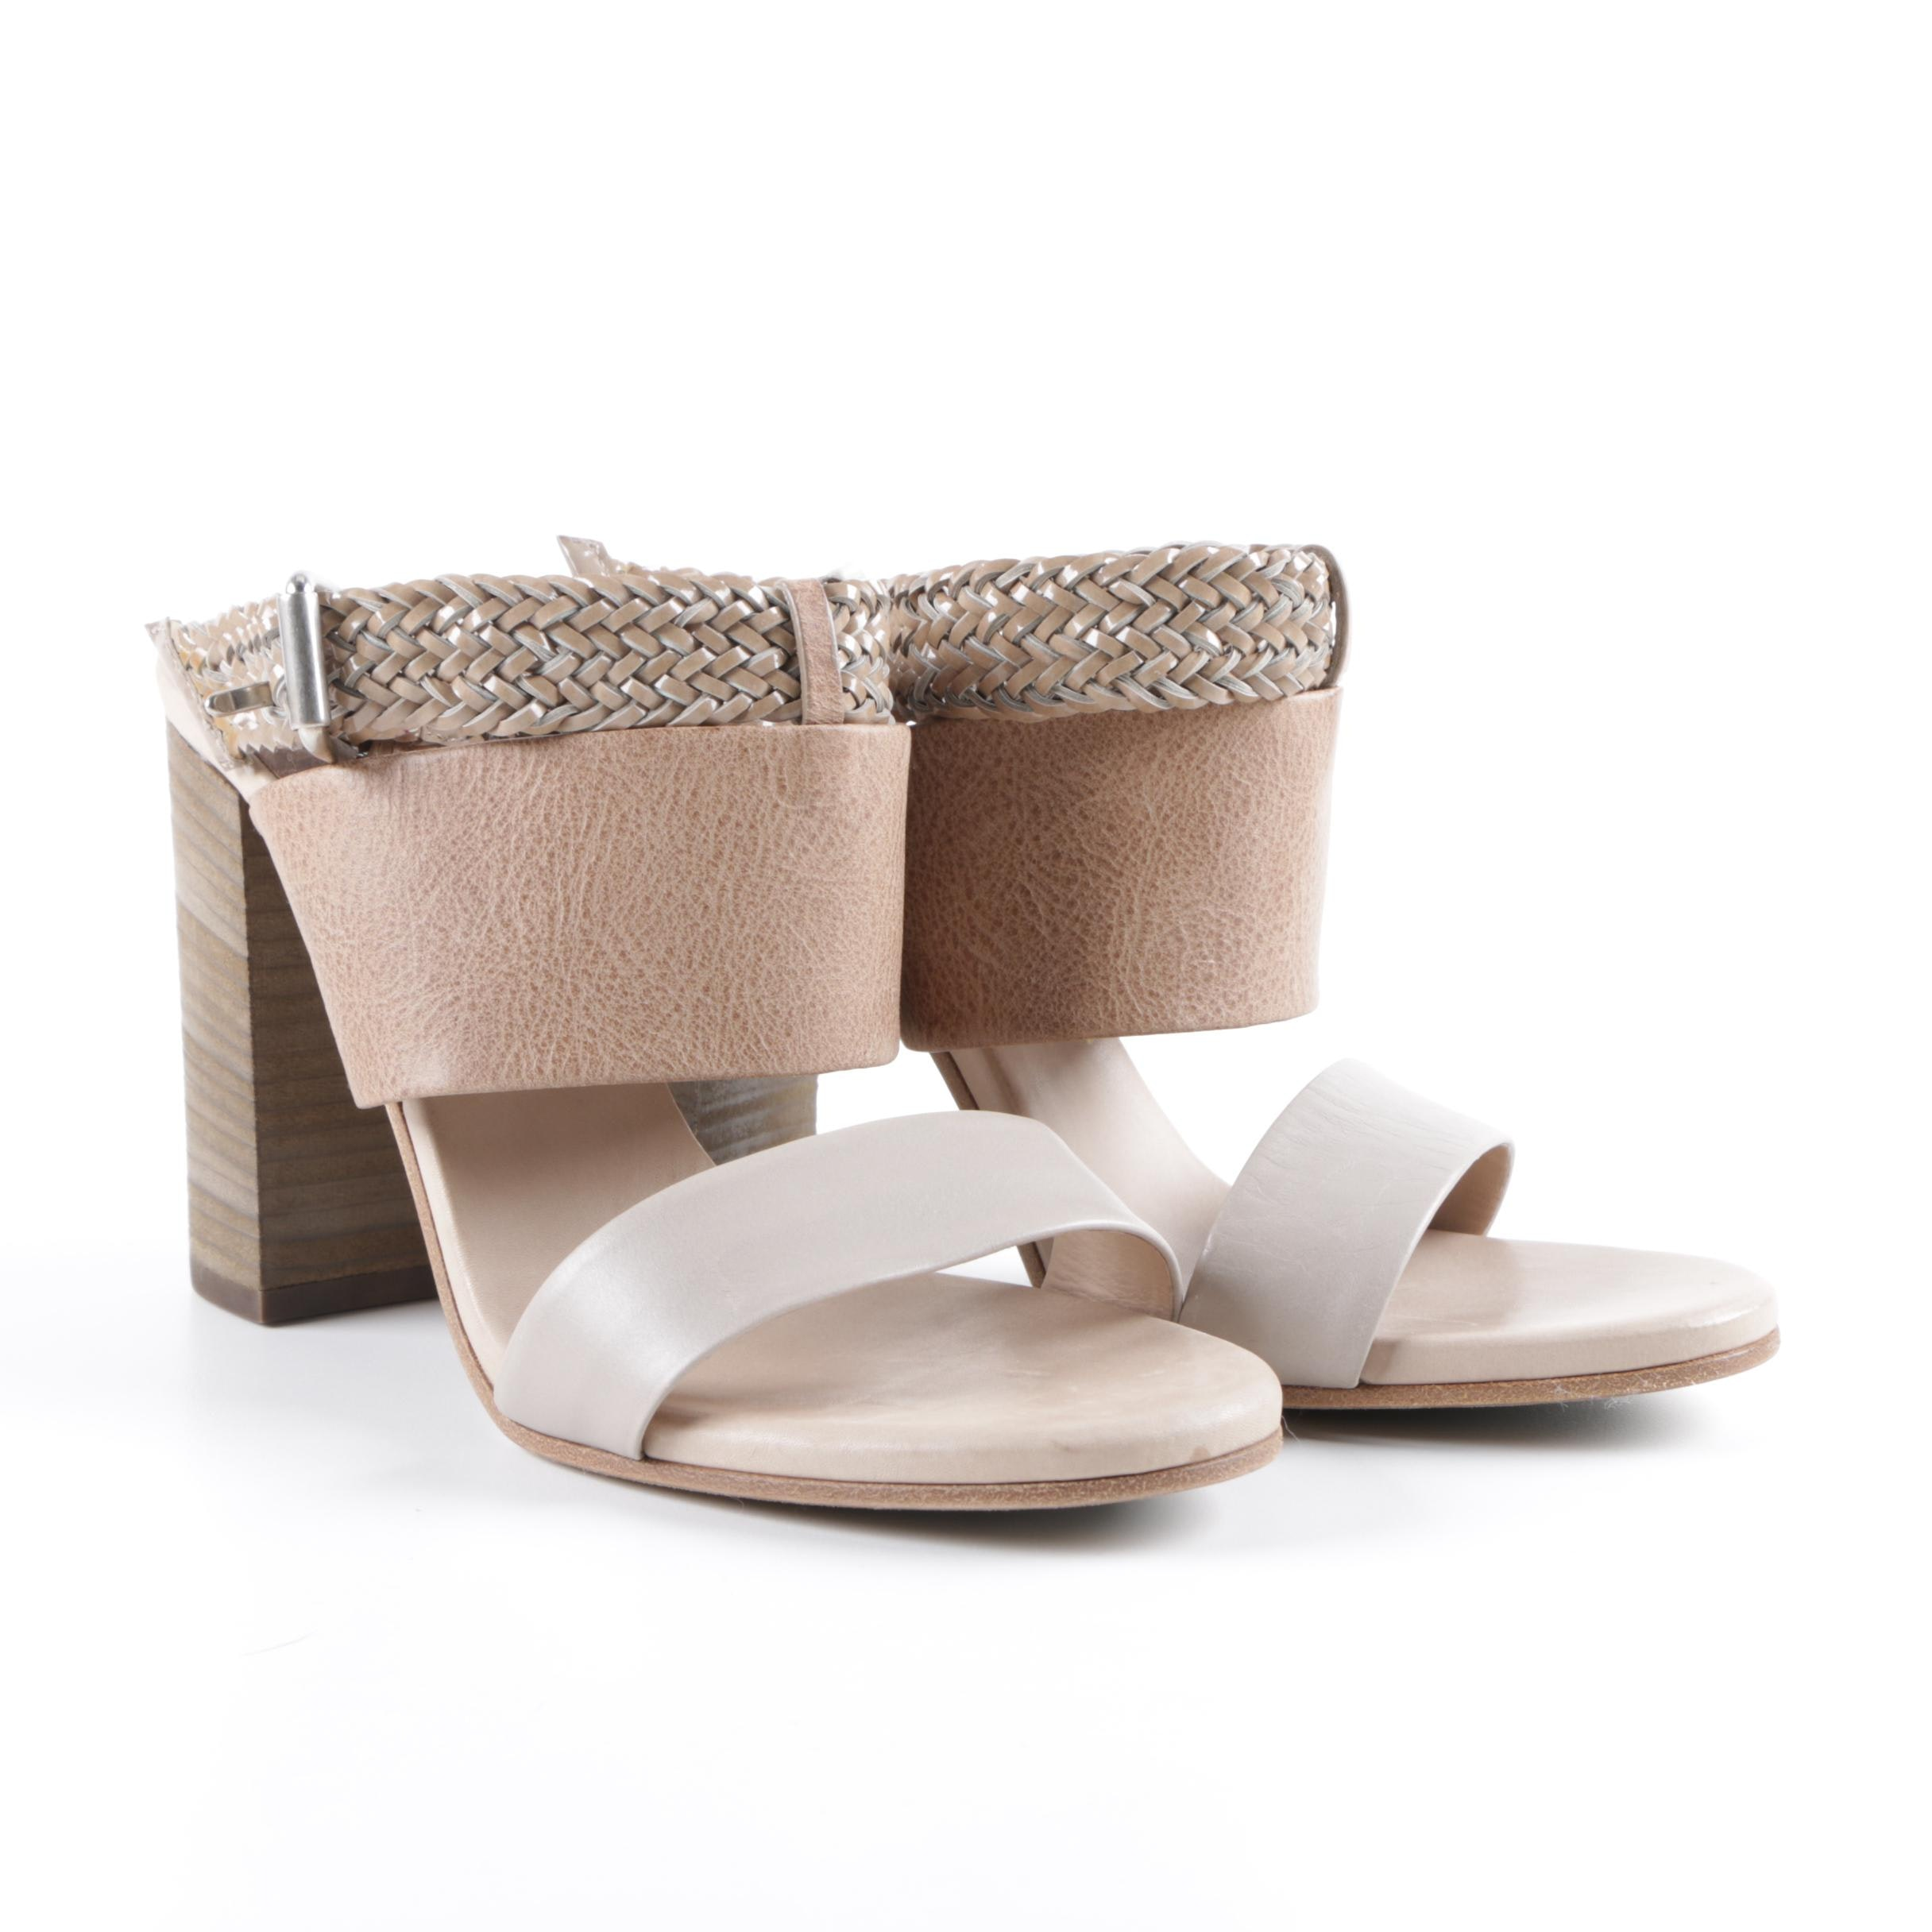 Brunello Cucinelli Brown Taupe Rope and Leather Heeled Sandals, Made in Italy